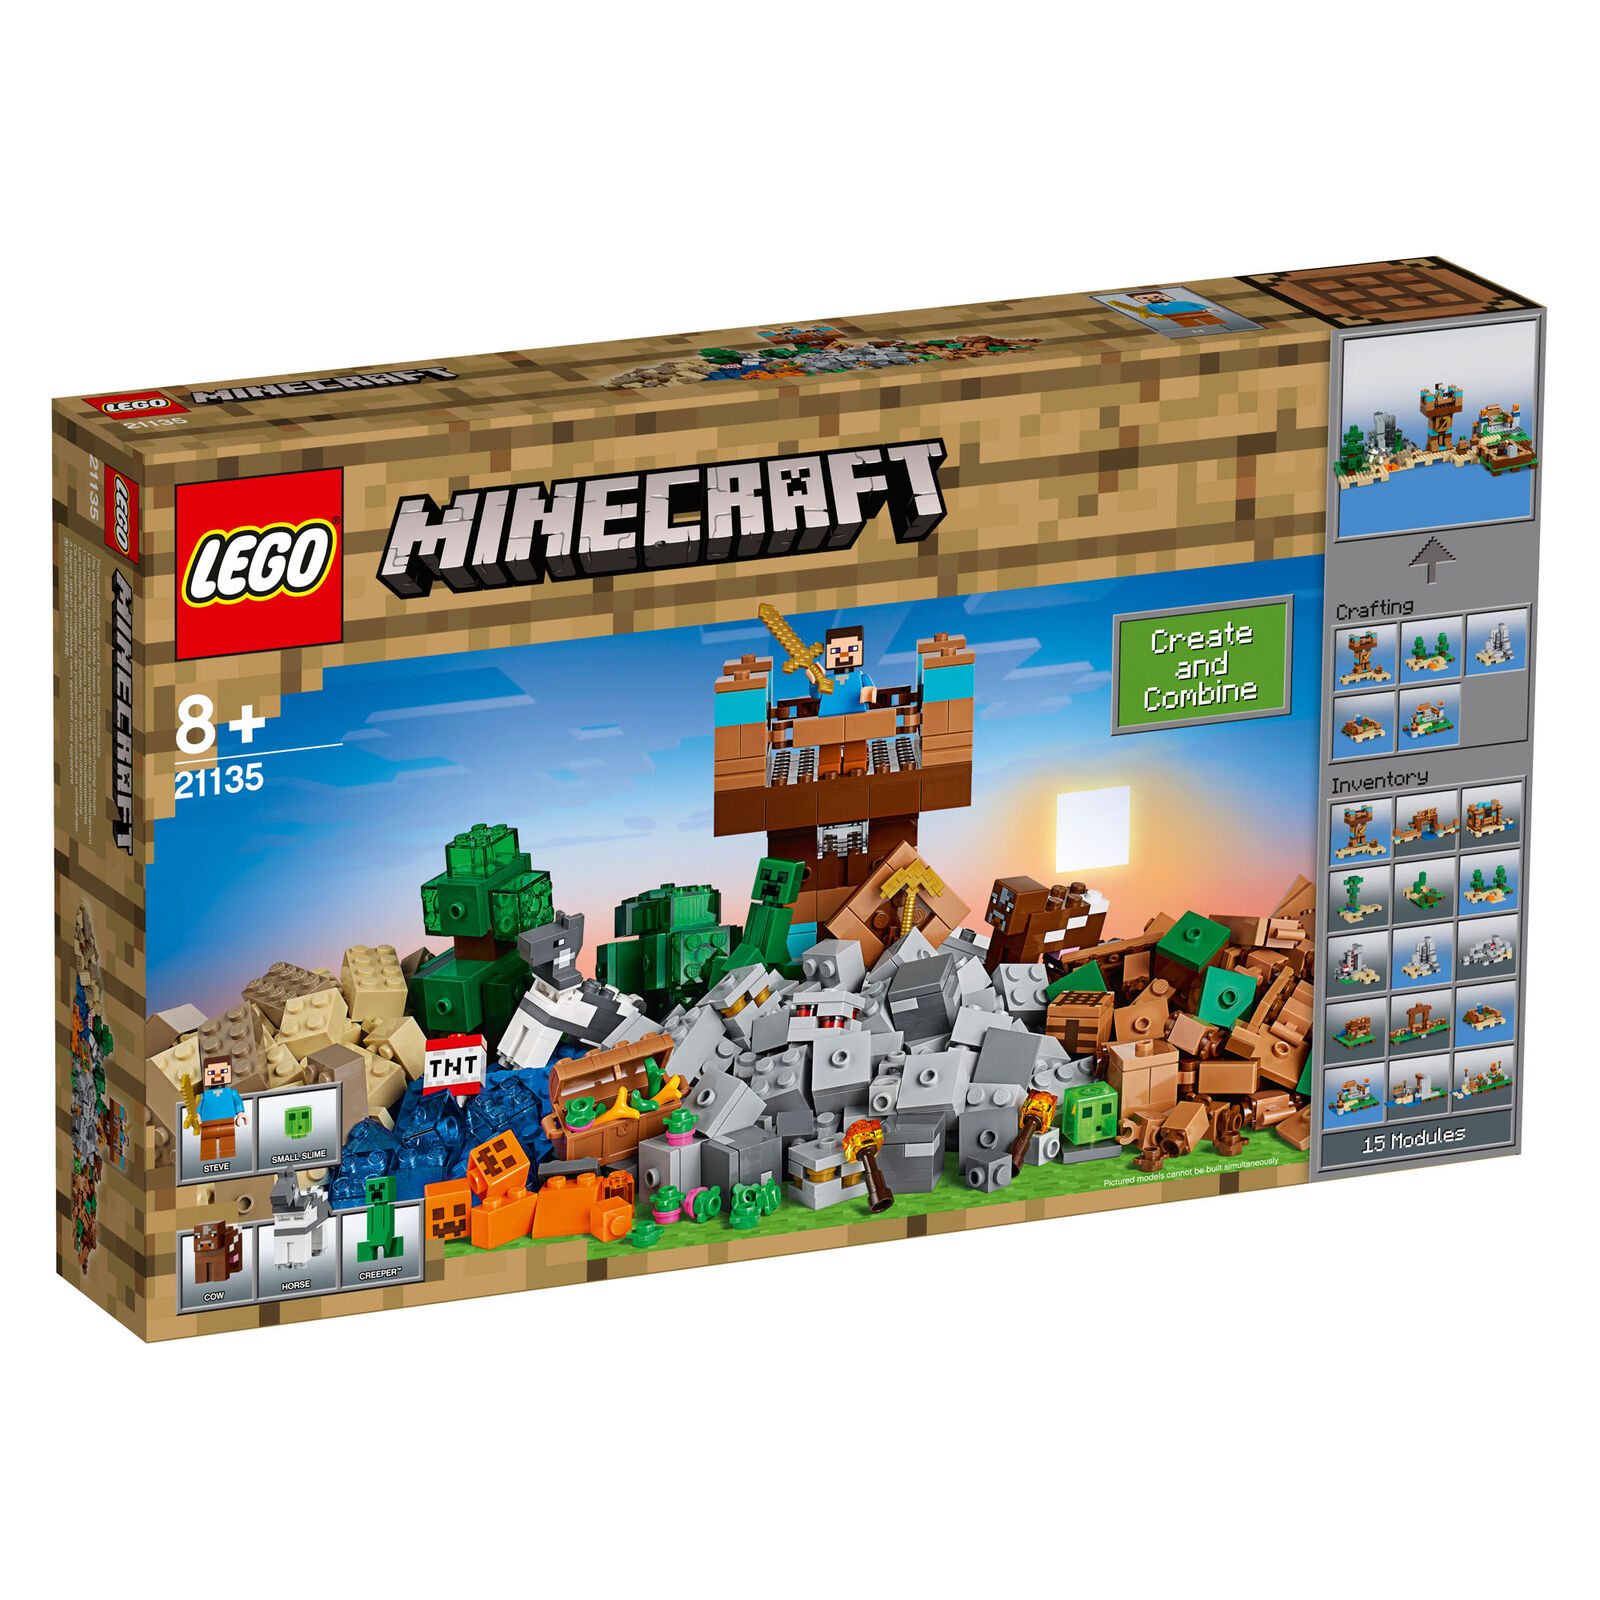 21135 Lego Minecraft The Crafting Box 2.0 8 717 Pieces 8 2.0 Years+ New Release 2017 0f5b55